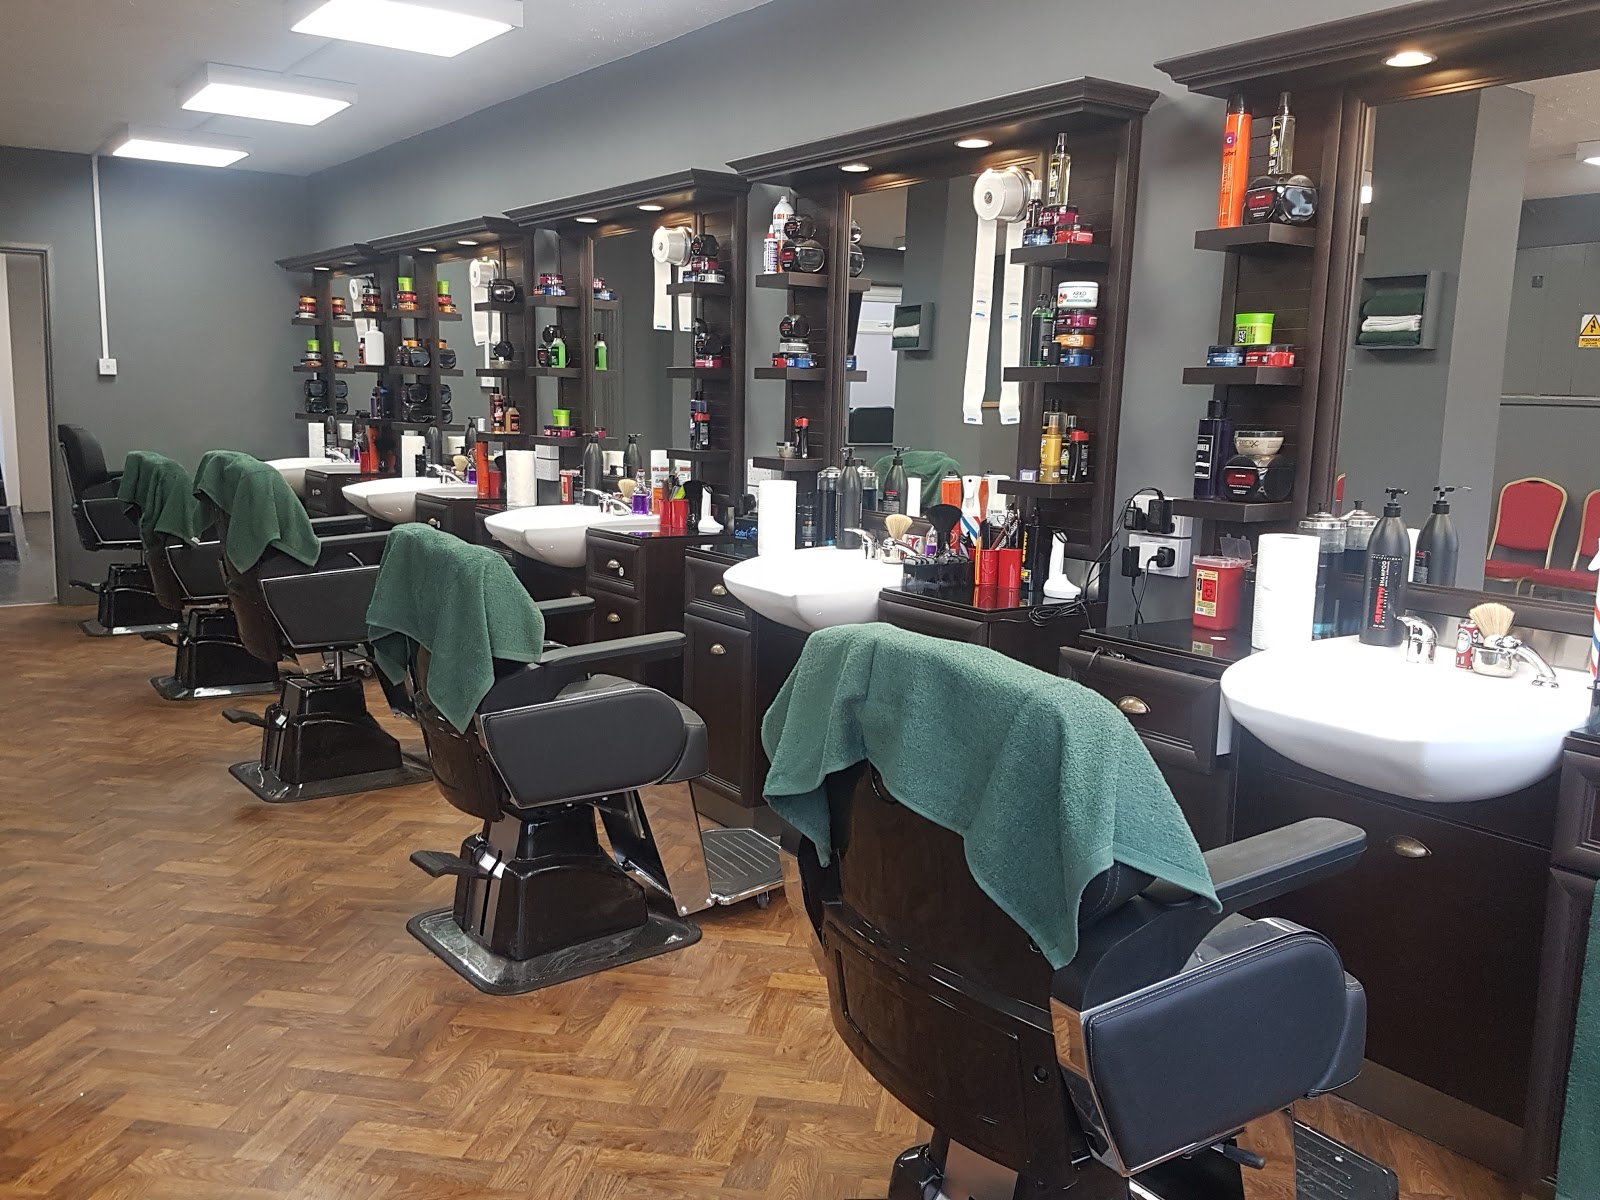 Golden Scissors - Thame Turkish Barber